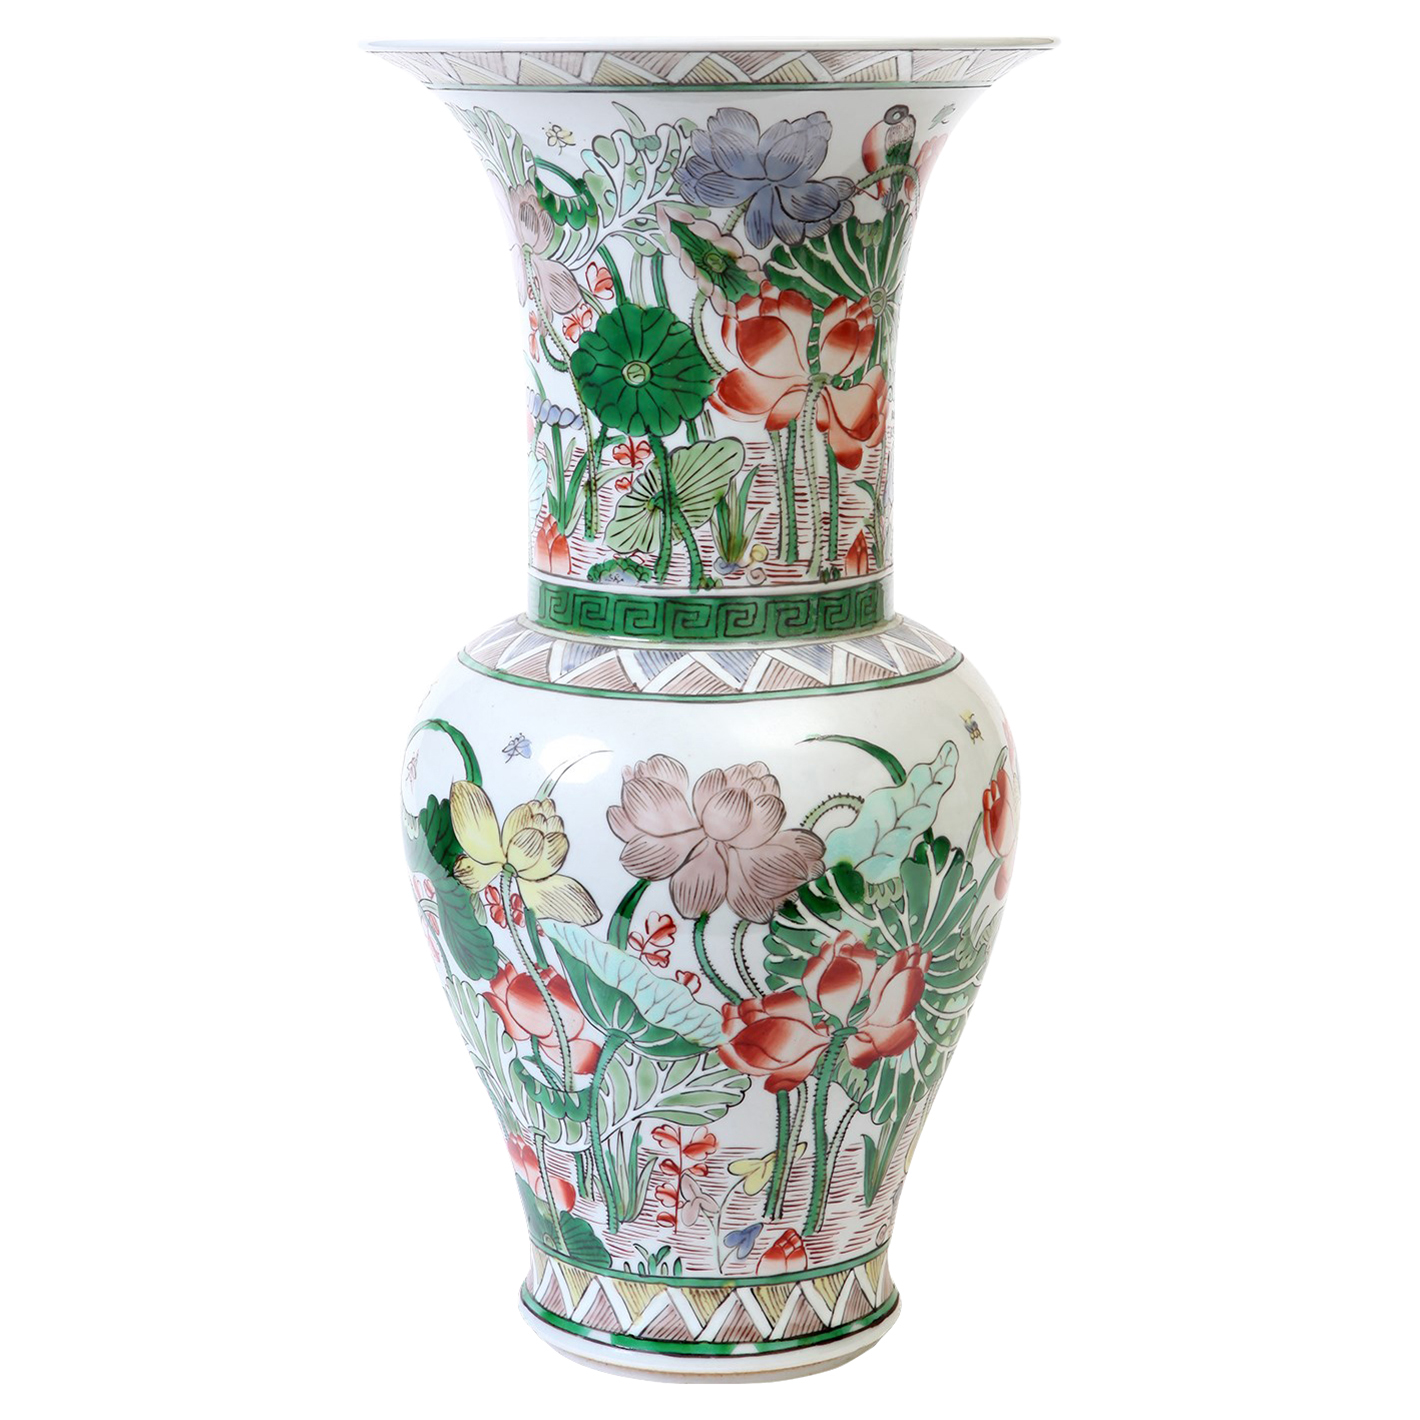 Ren Global Bazaar Lily Pond Tall Wide Mouth Porcelain Vase